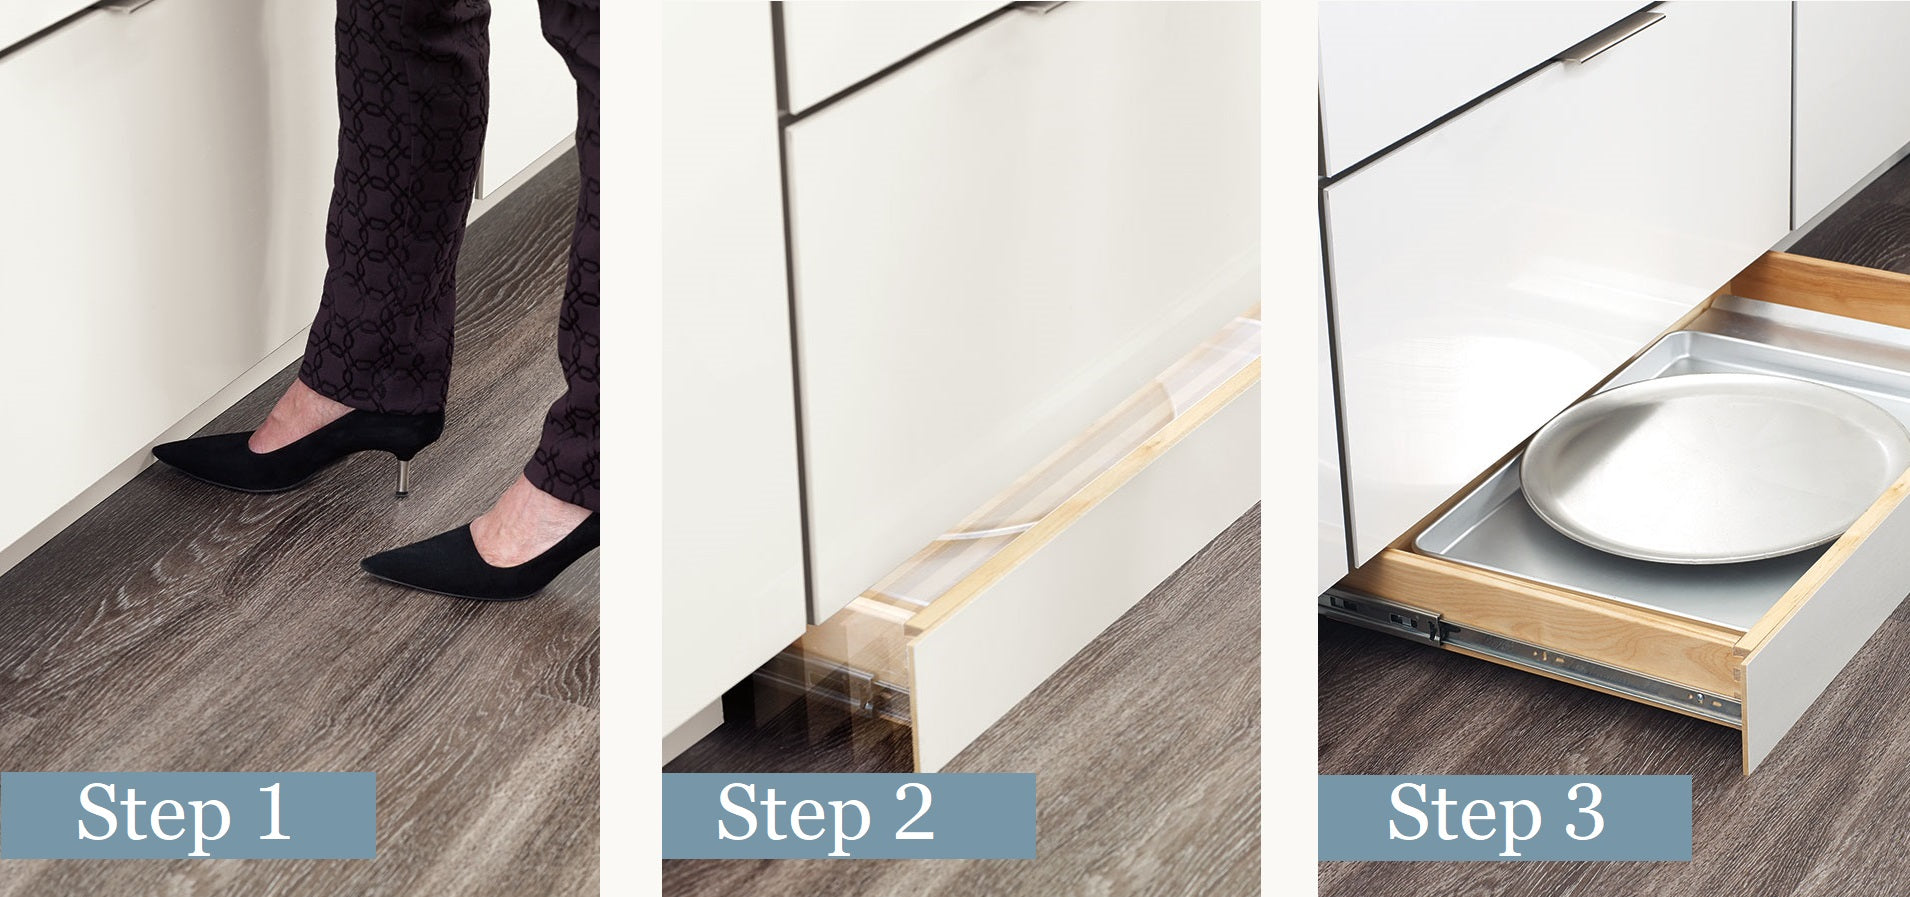 Push to open toe kick drawer for hidden storage